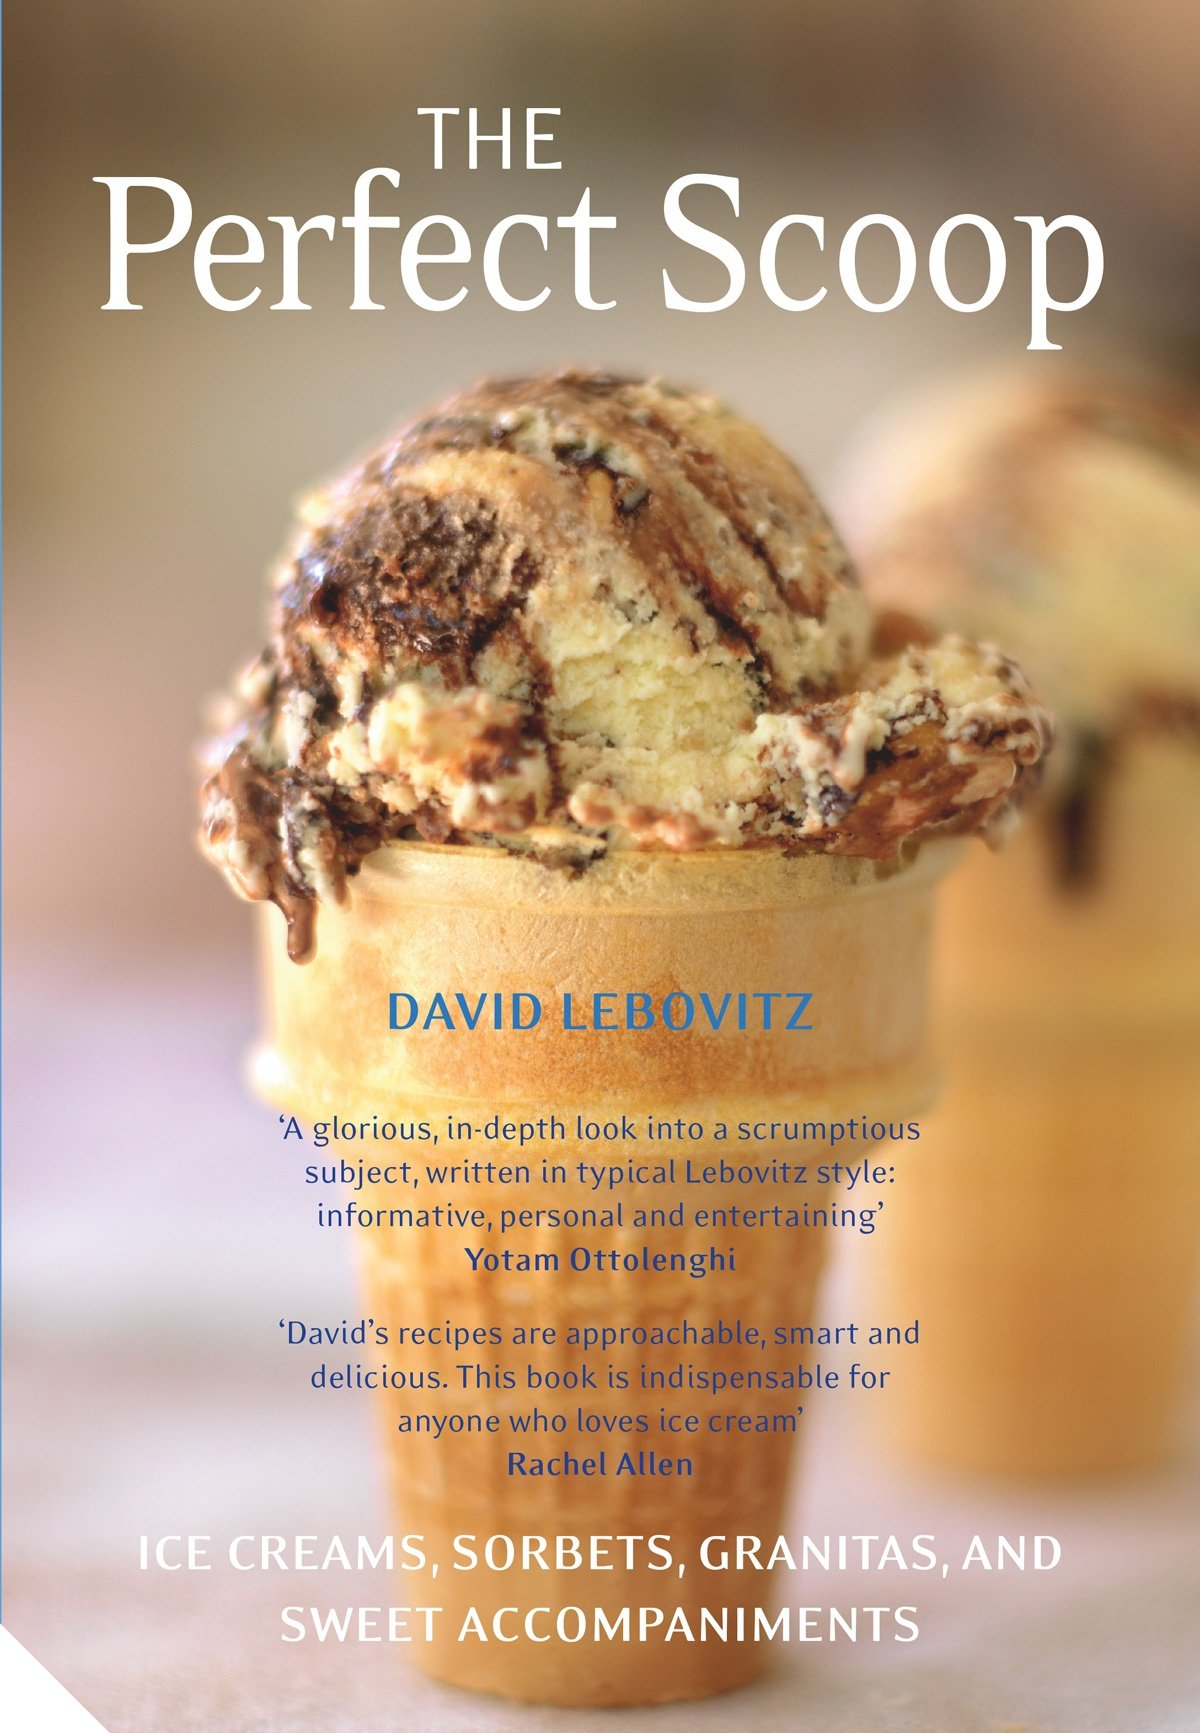 Book cover of The Perfect Scoop by David Lebovitz